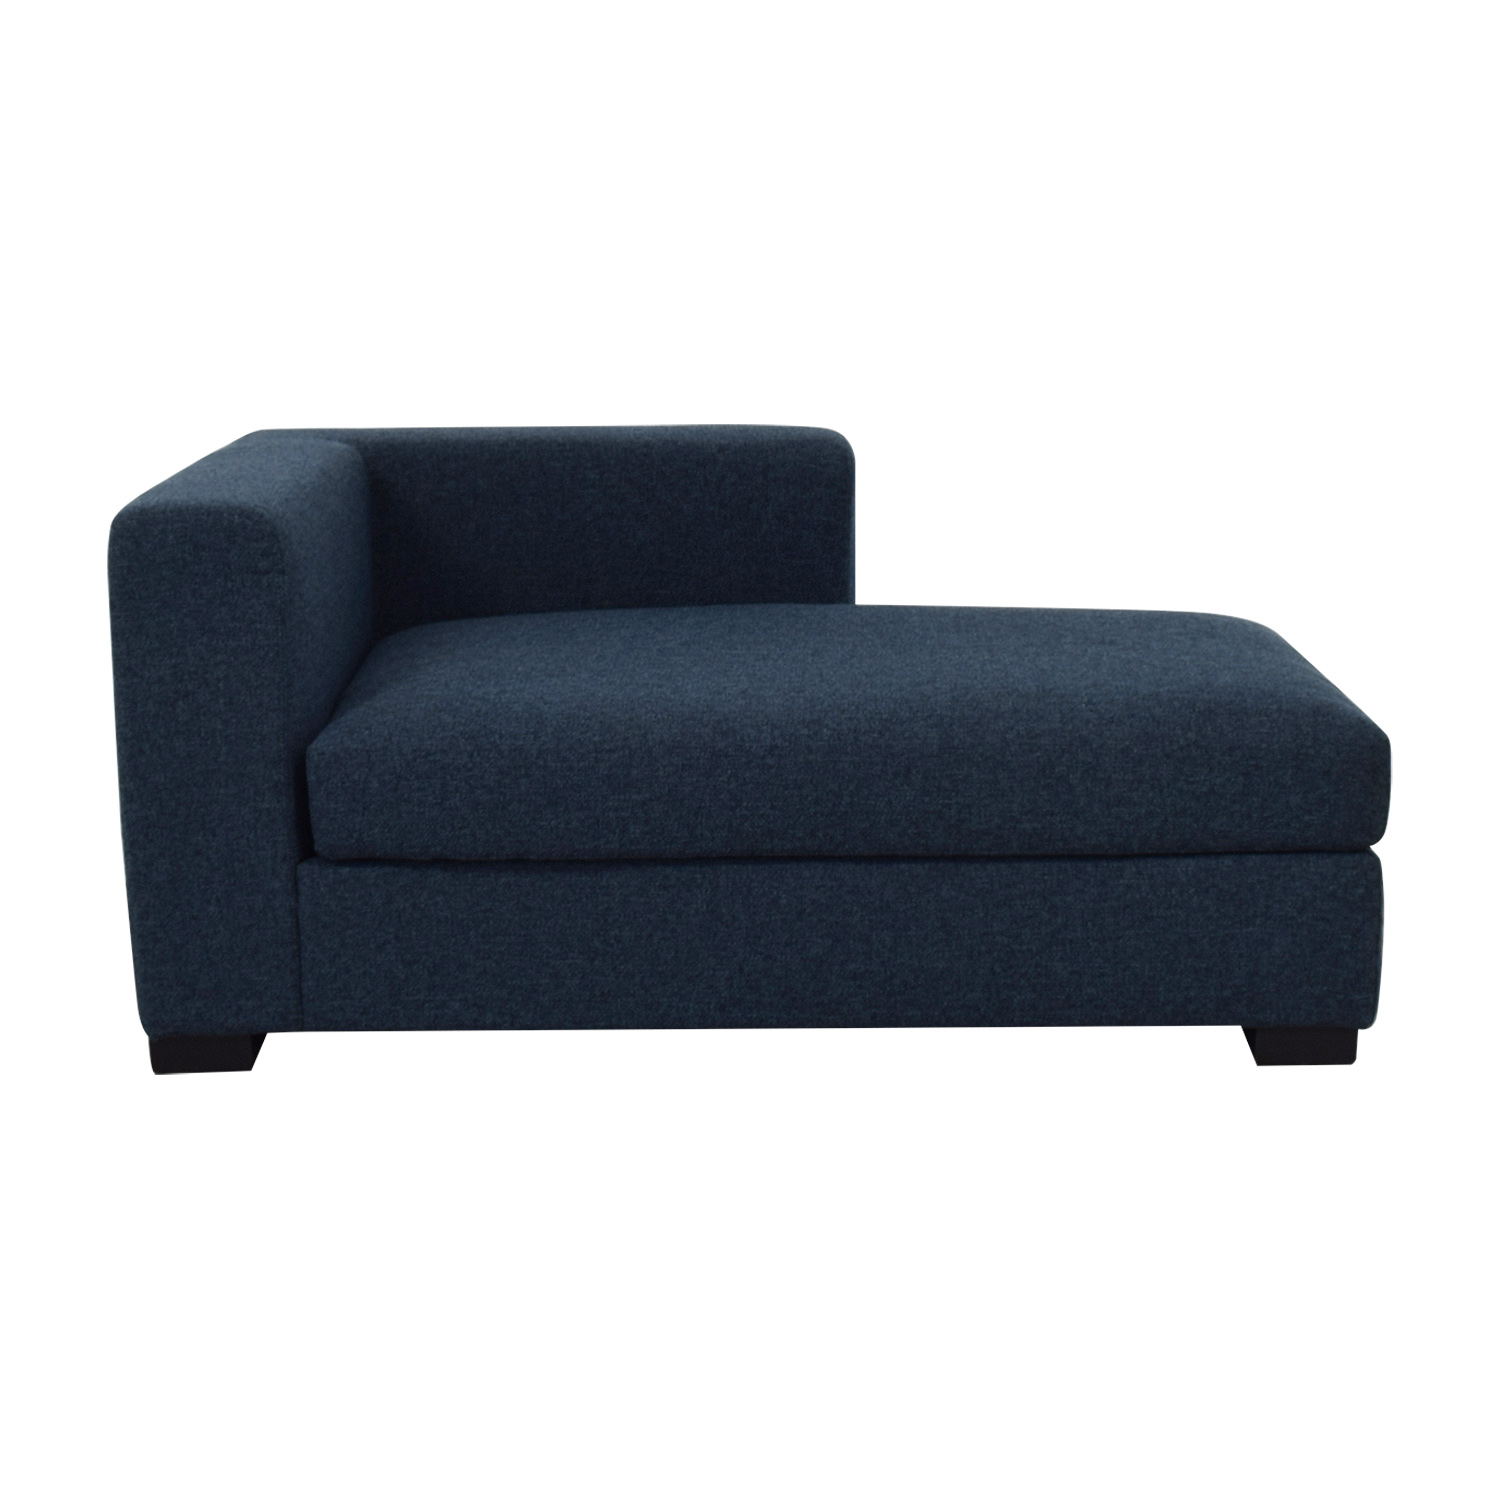 buy  Toby Indigo Right Chaise online